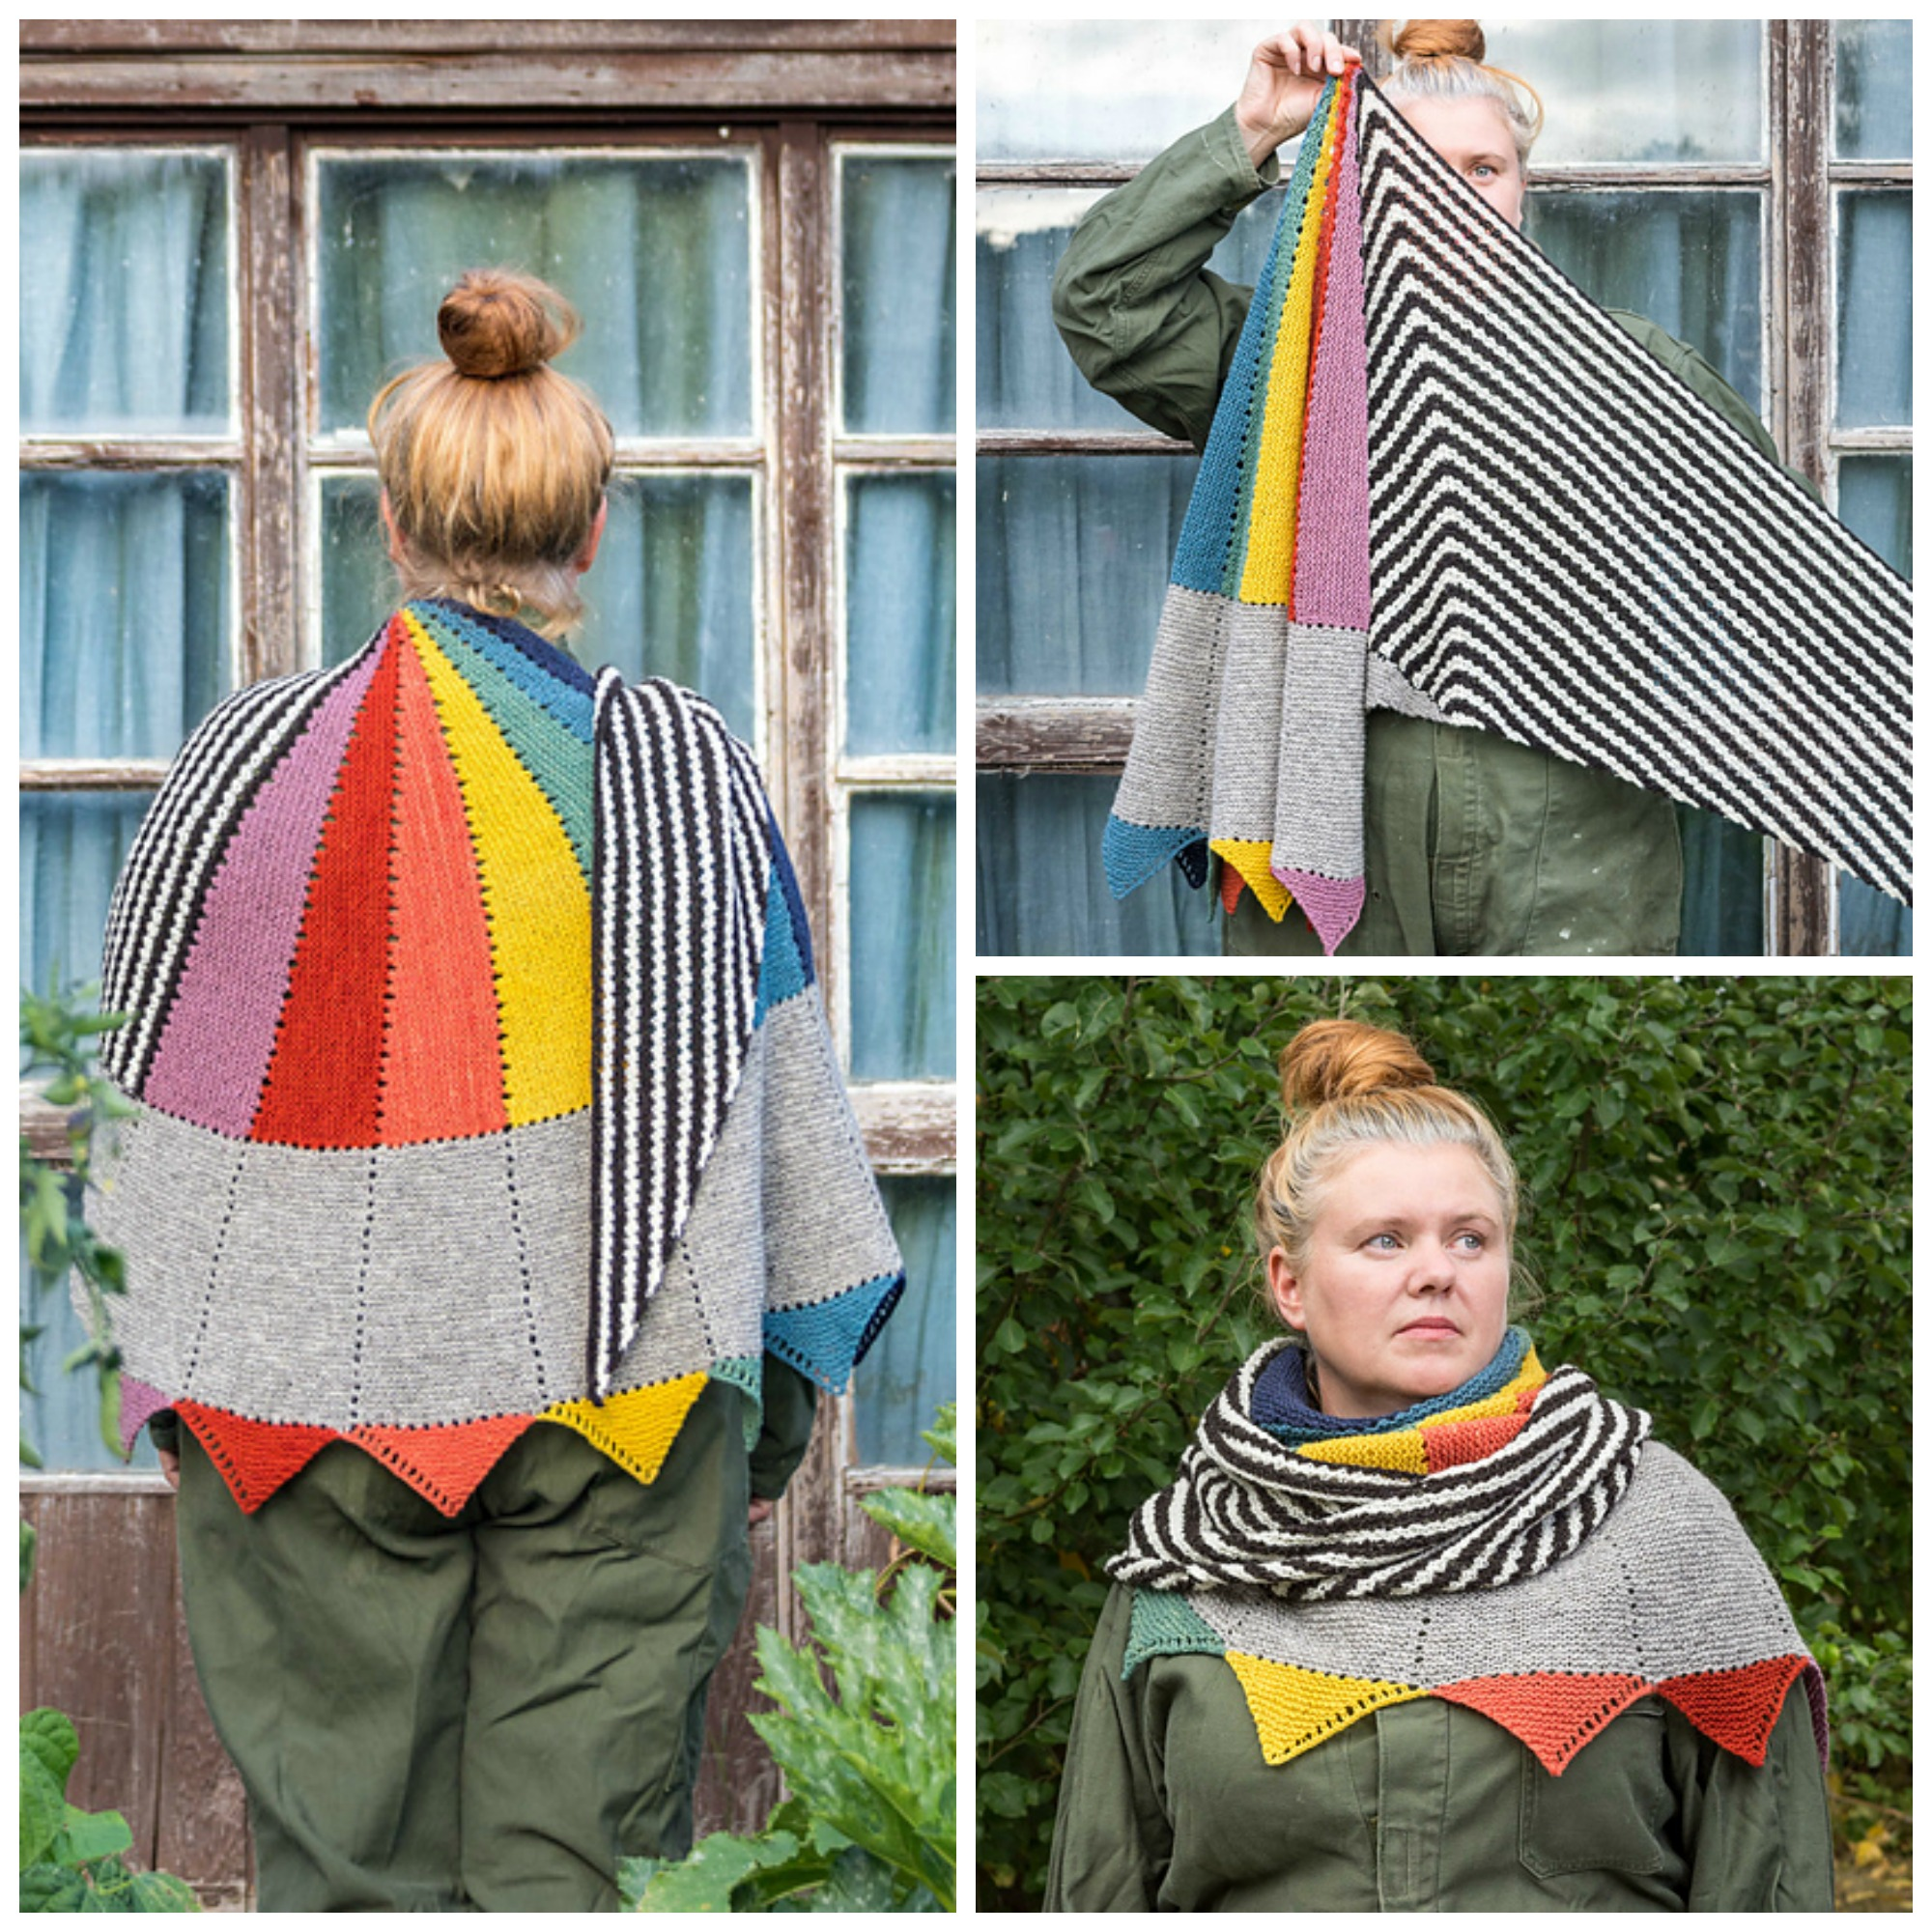 This Colorful Asymmetric Shawl Designed By Anna Maltz Will Turn Heads - It's Simply Marvelous